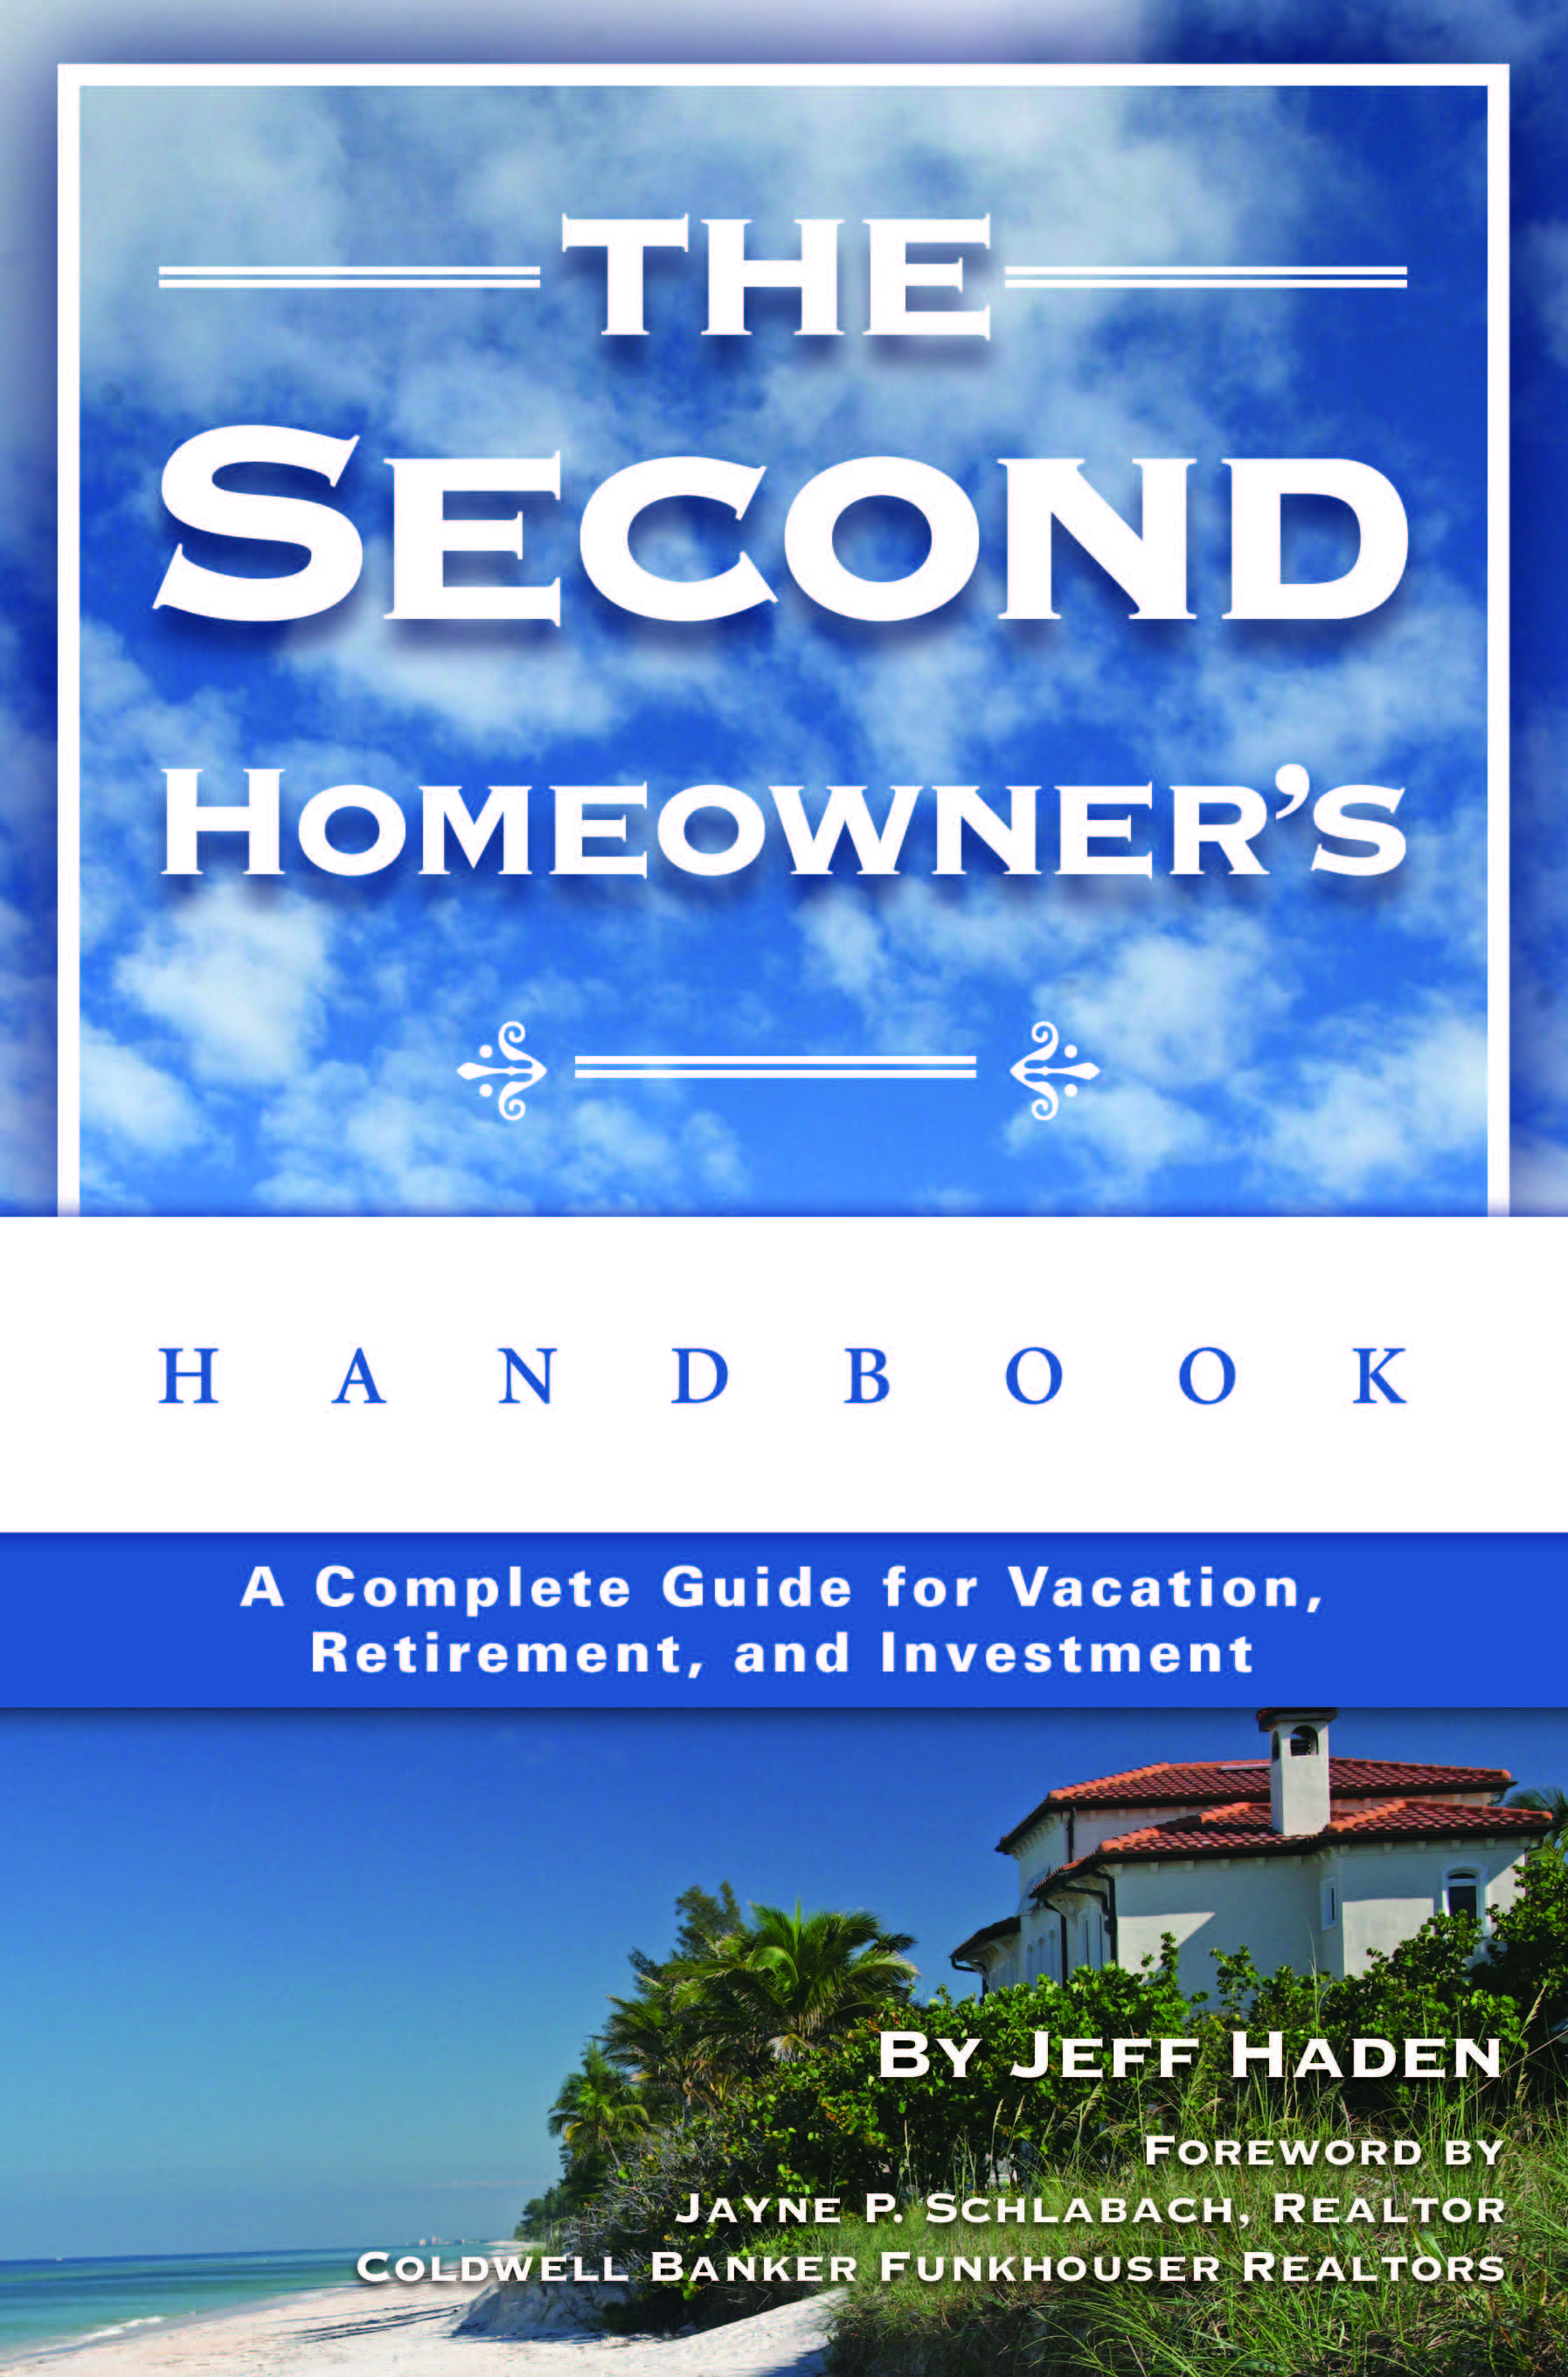 The Second Homeowner's Handbook  A Complete Guide for Vacation, Income, Retirement, and Investment